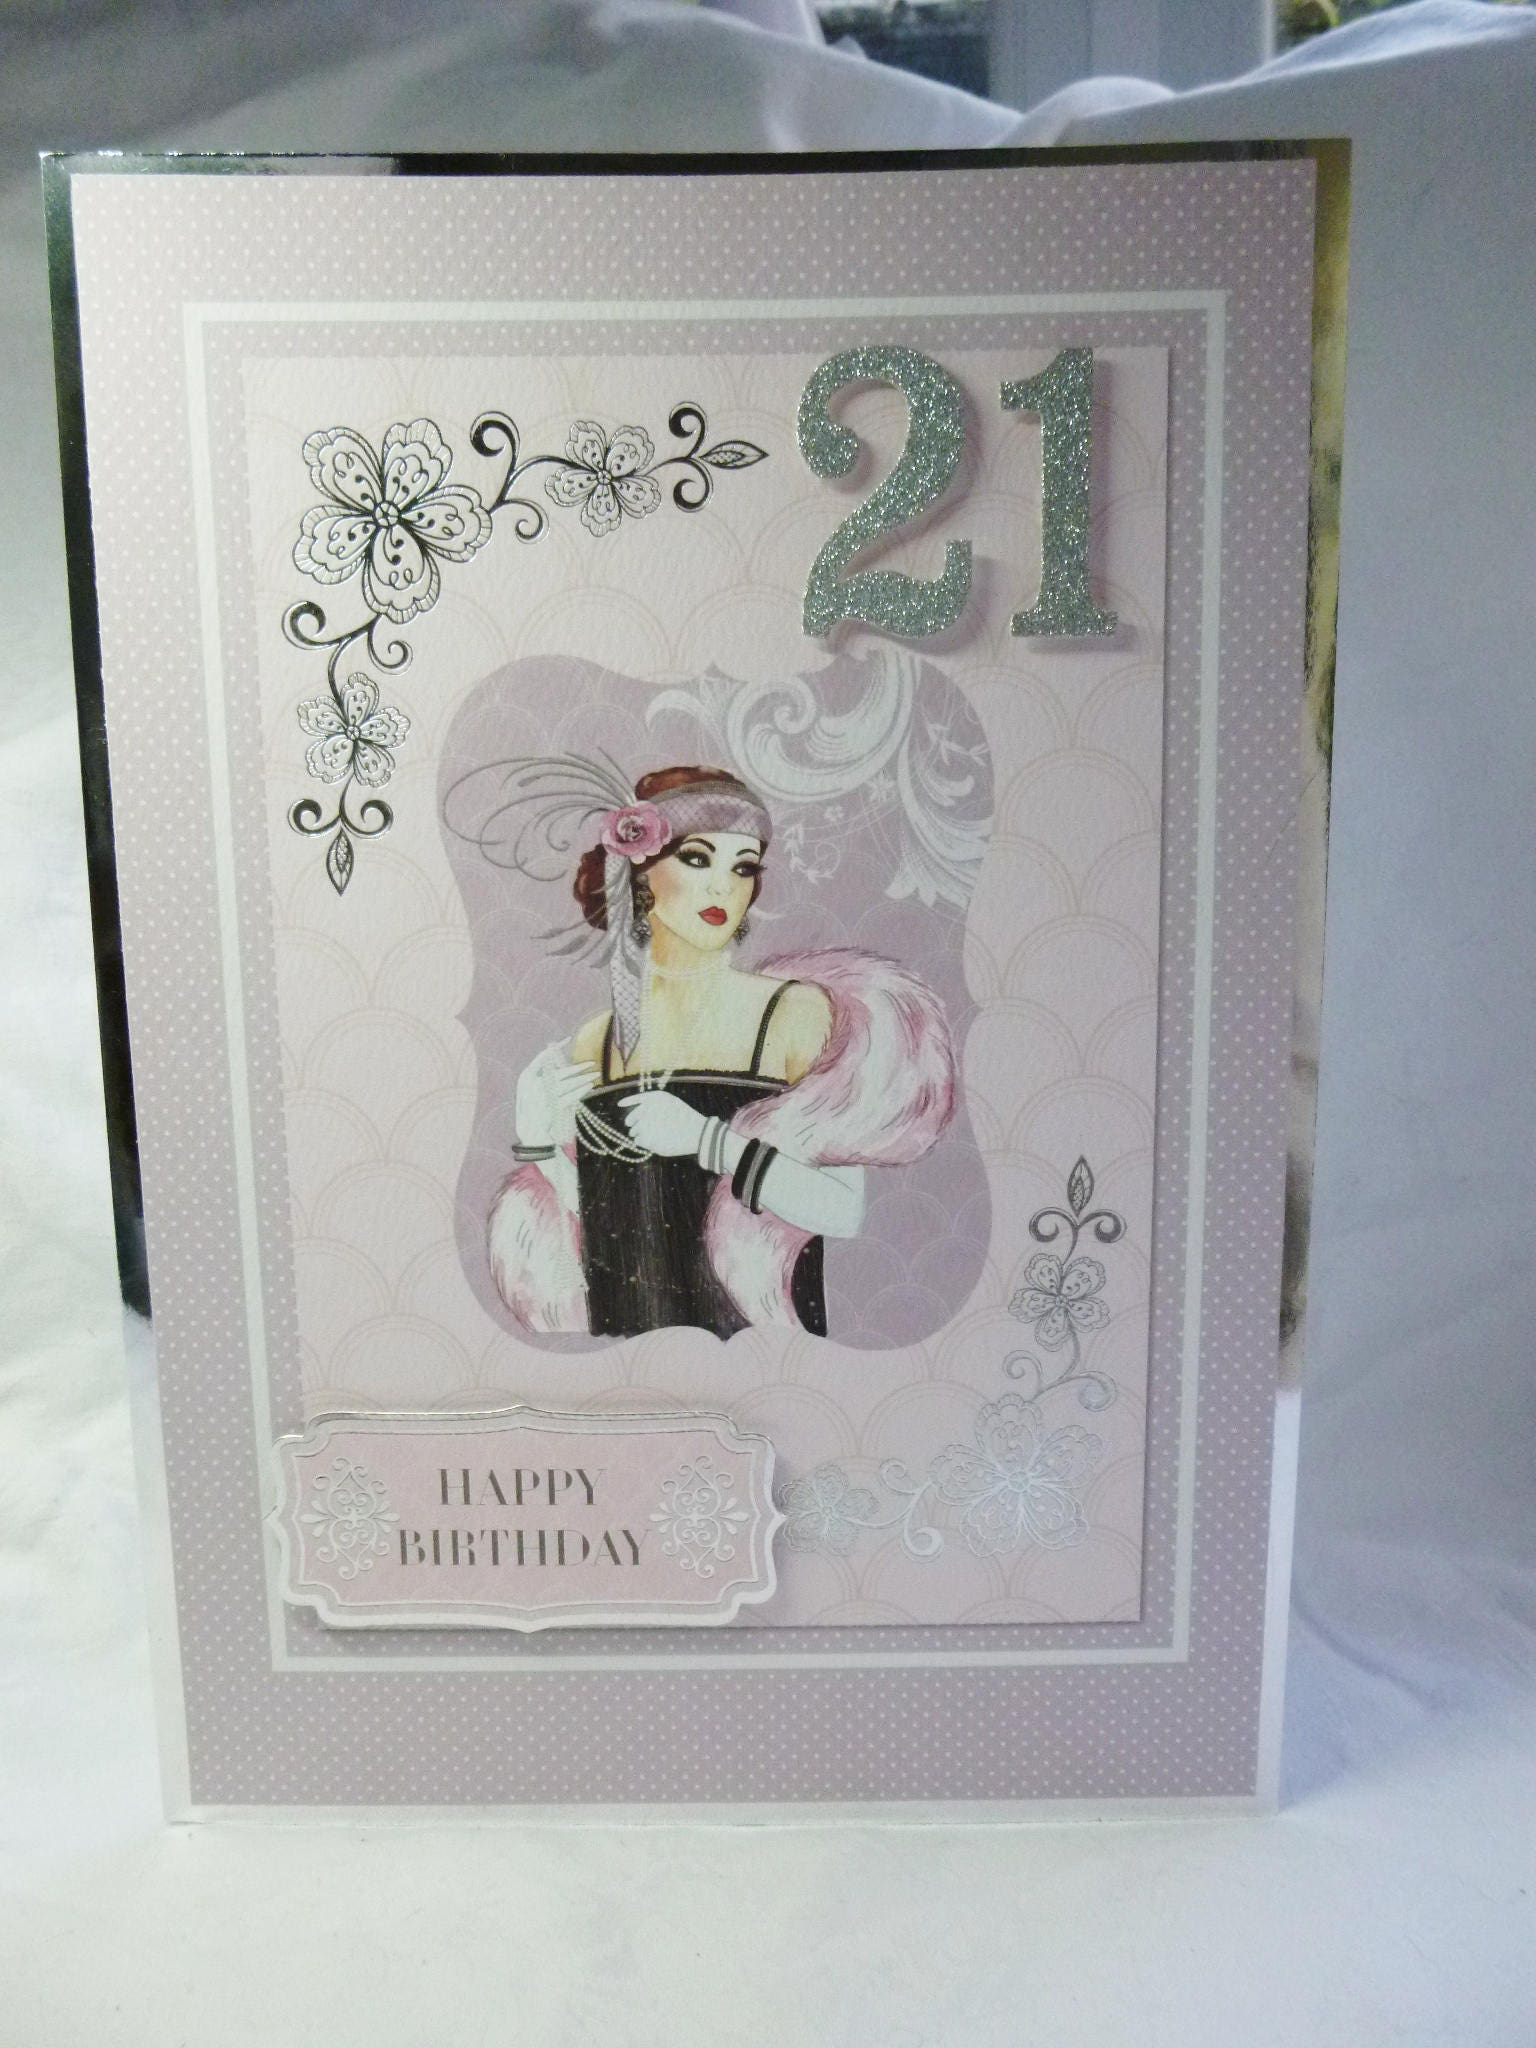 Art Deco 21st Birthday Card Happy Special Day Fashionable Lady Party Dress Pink And Silver A4 Size Made To Order